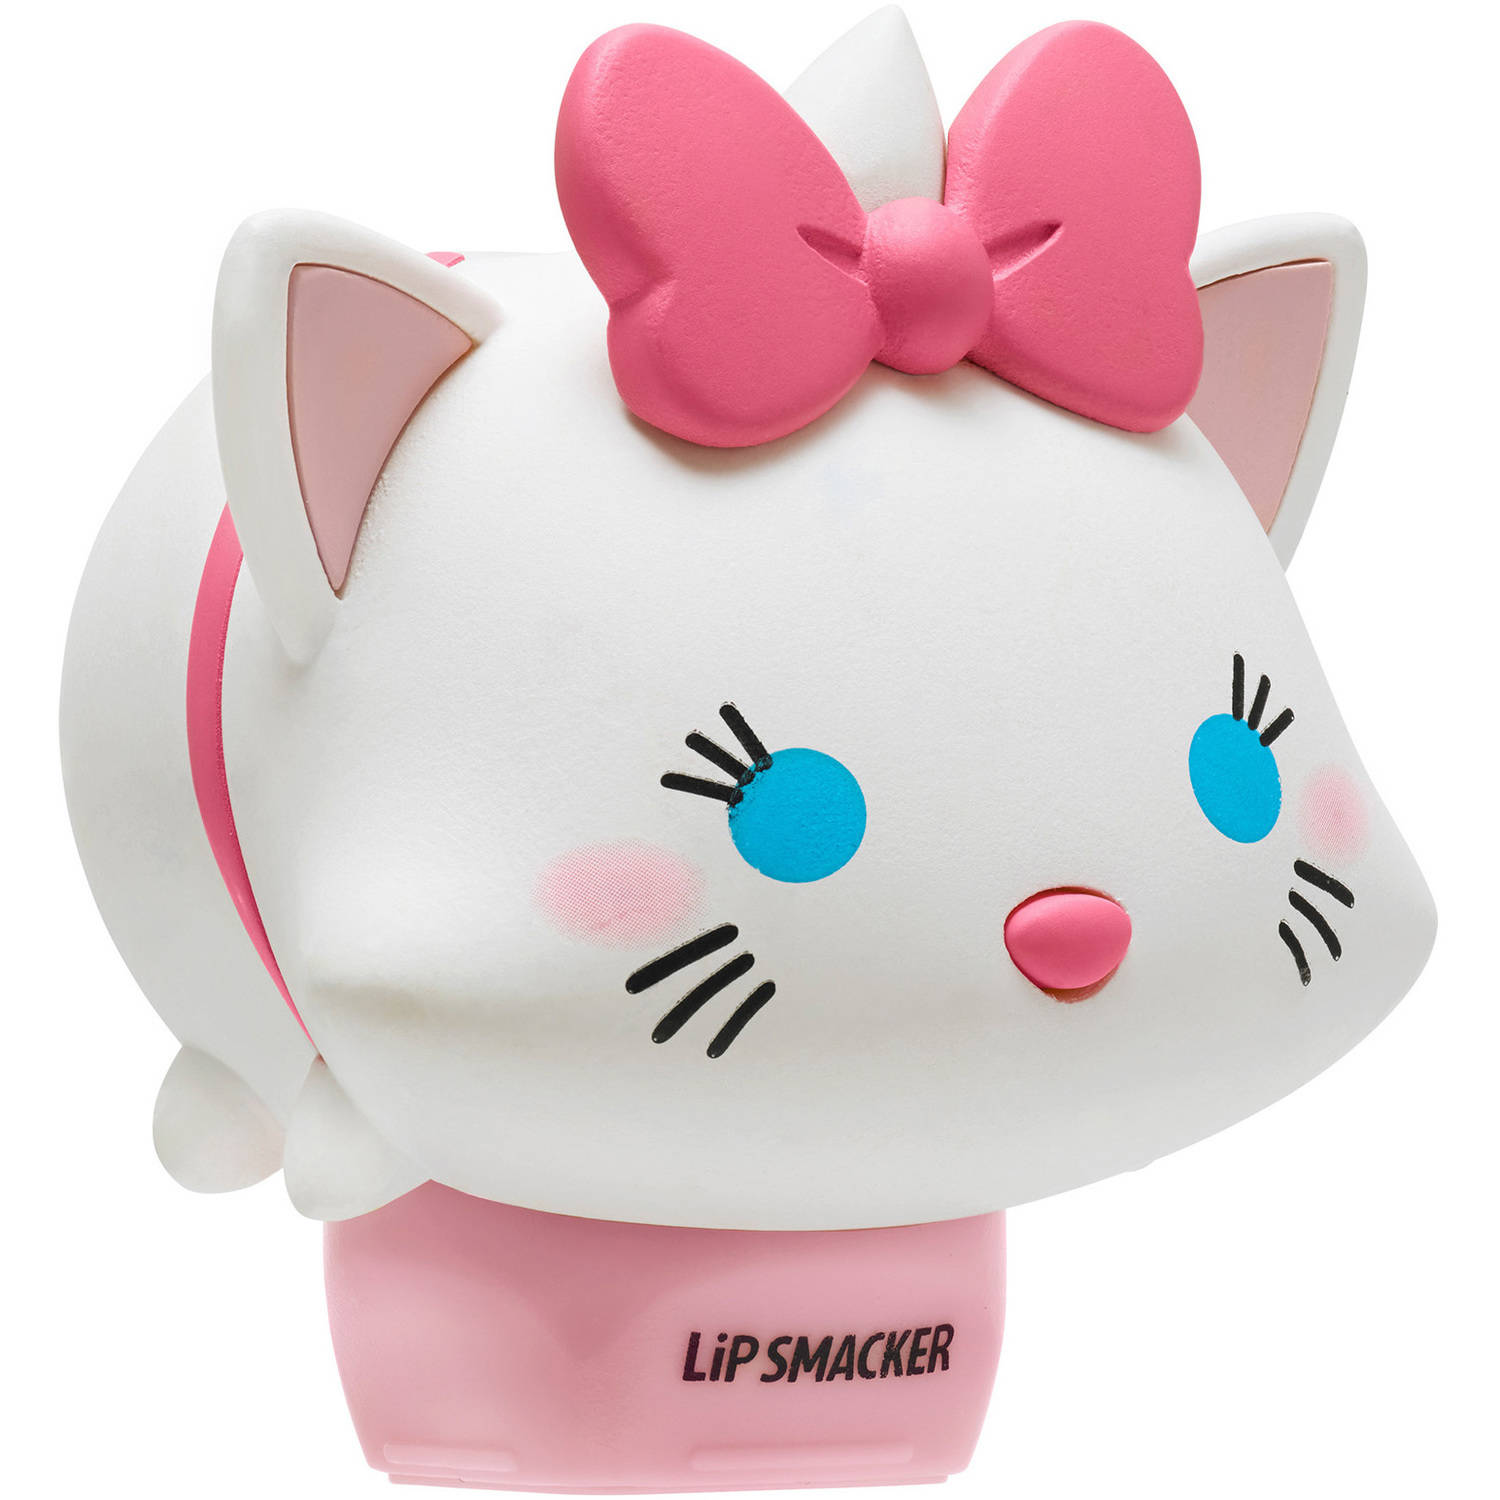 Lip Smacker Disney Tsum Tsum - Marie Love in Pear-y